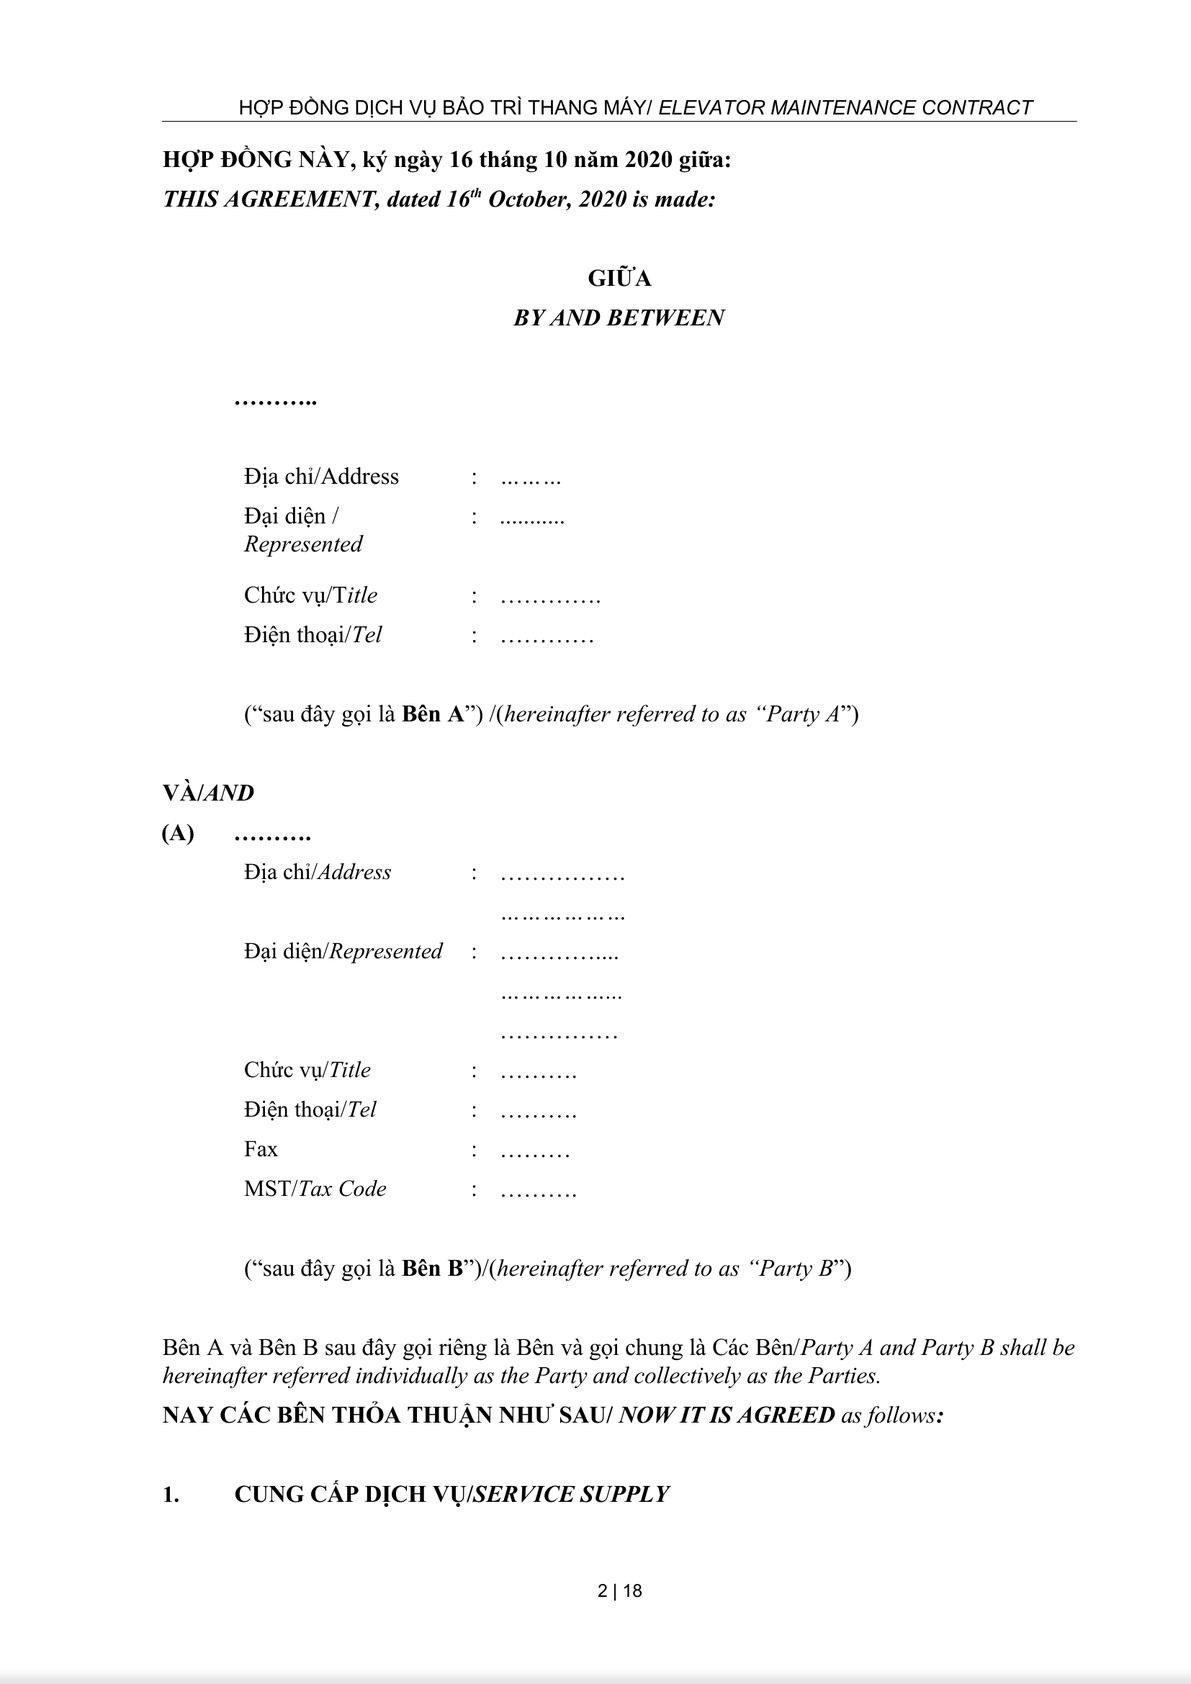 Maintenance Service Agreement-1